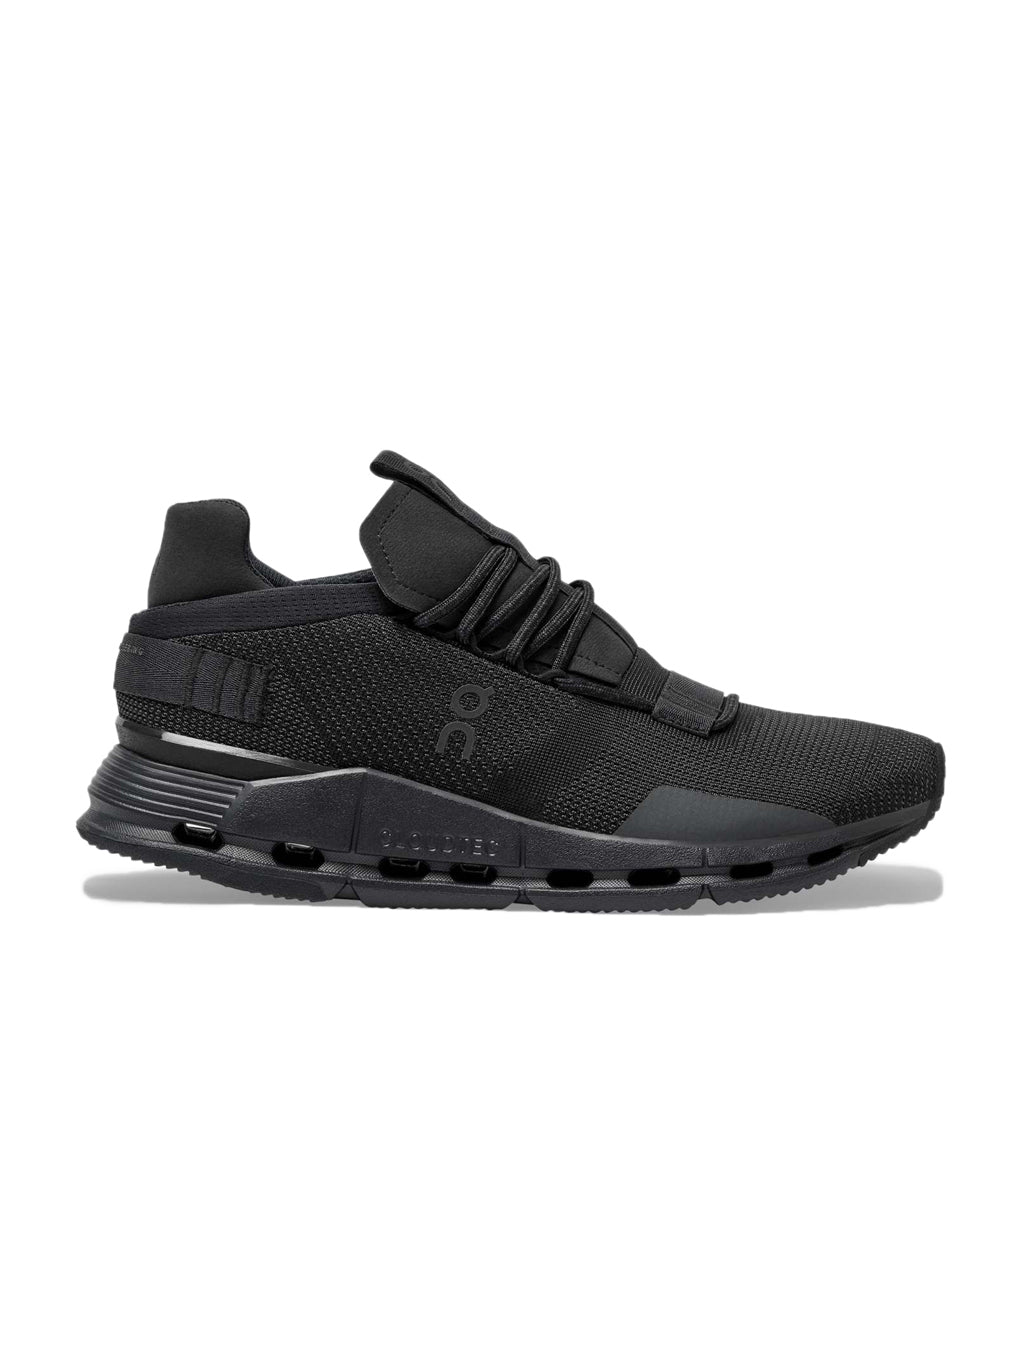 Black Cloudnova Sneakers